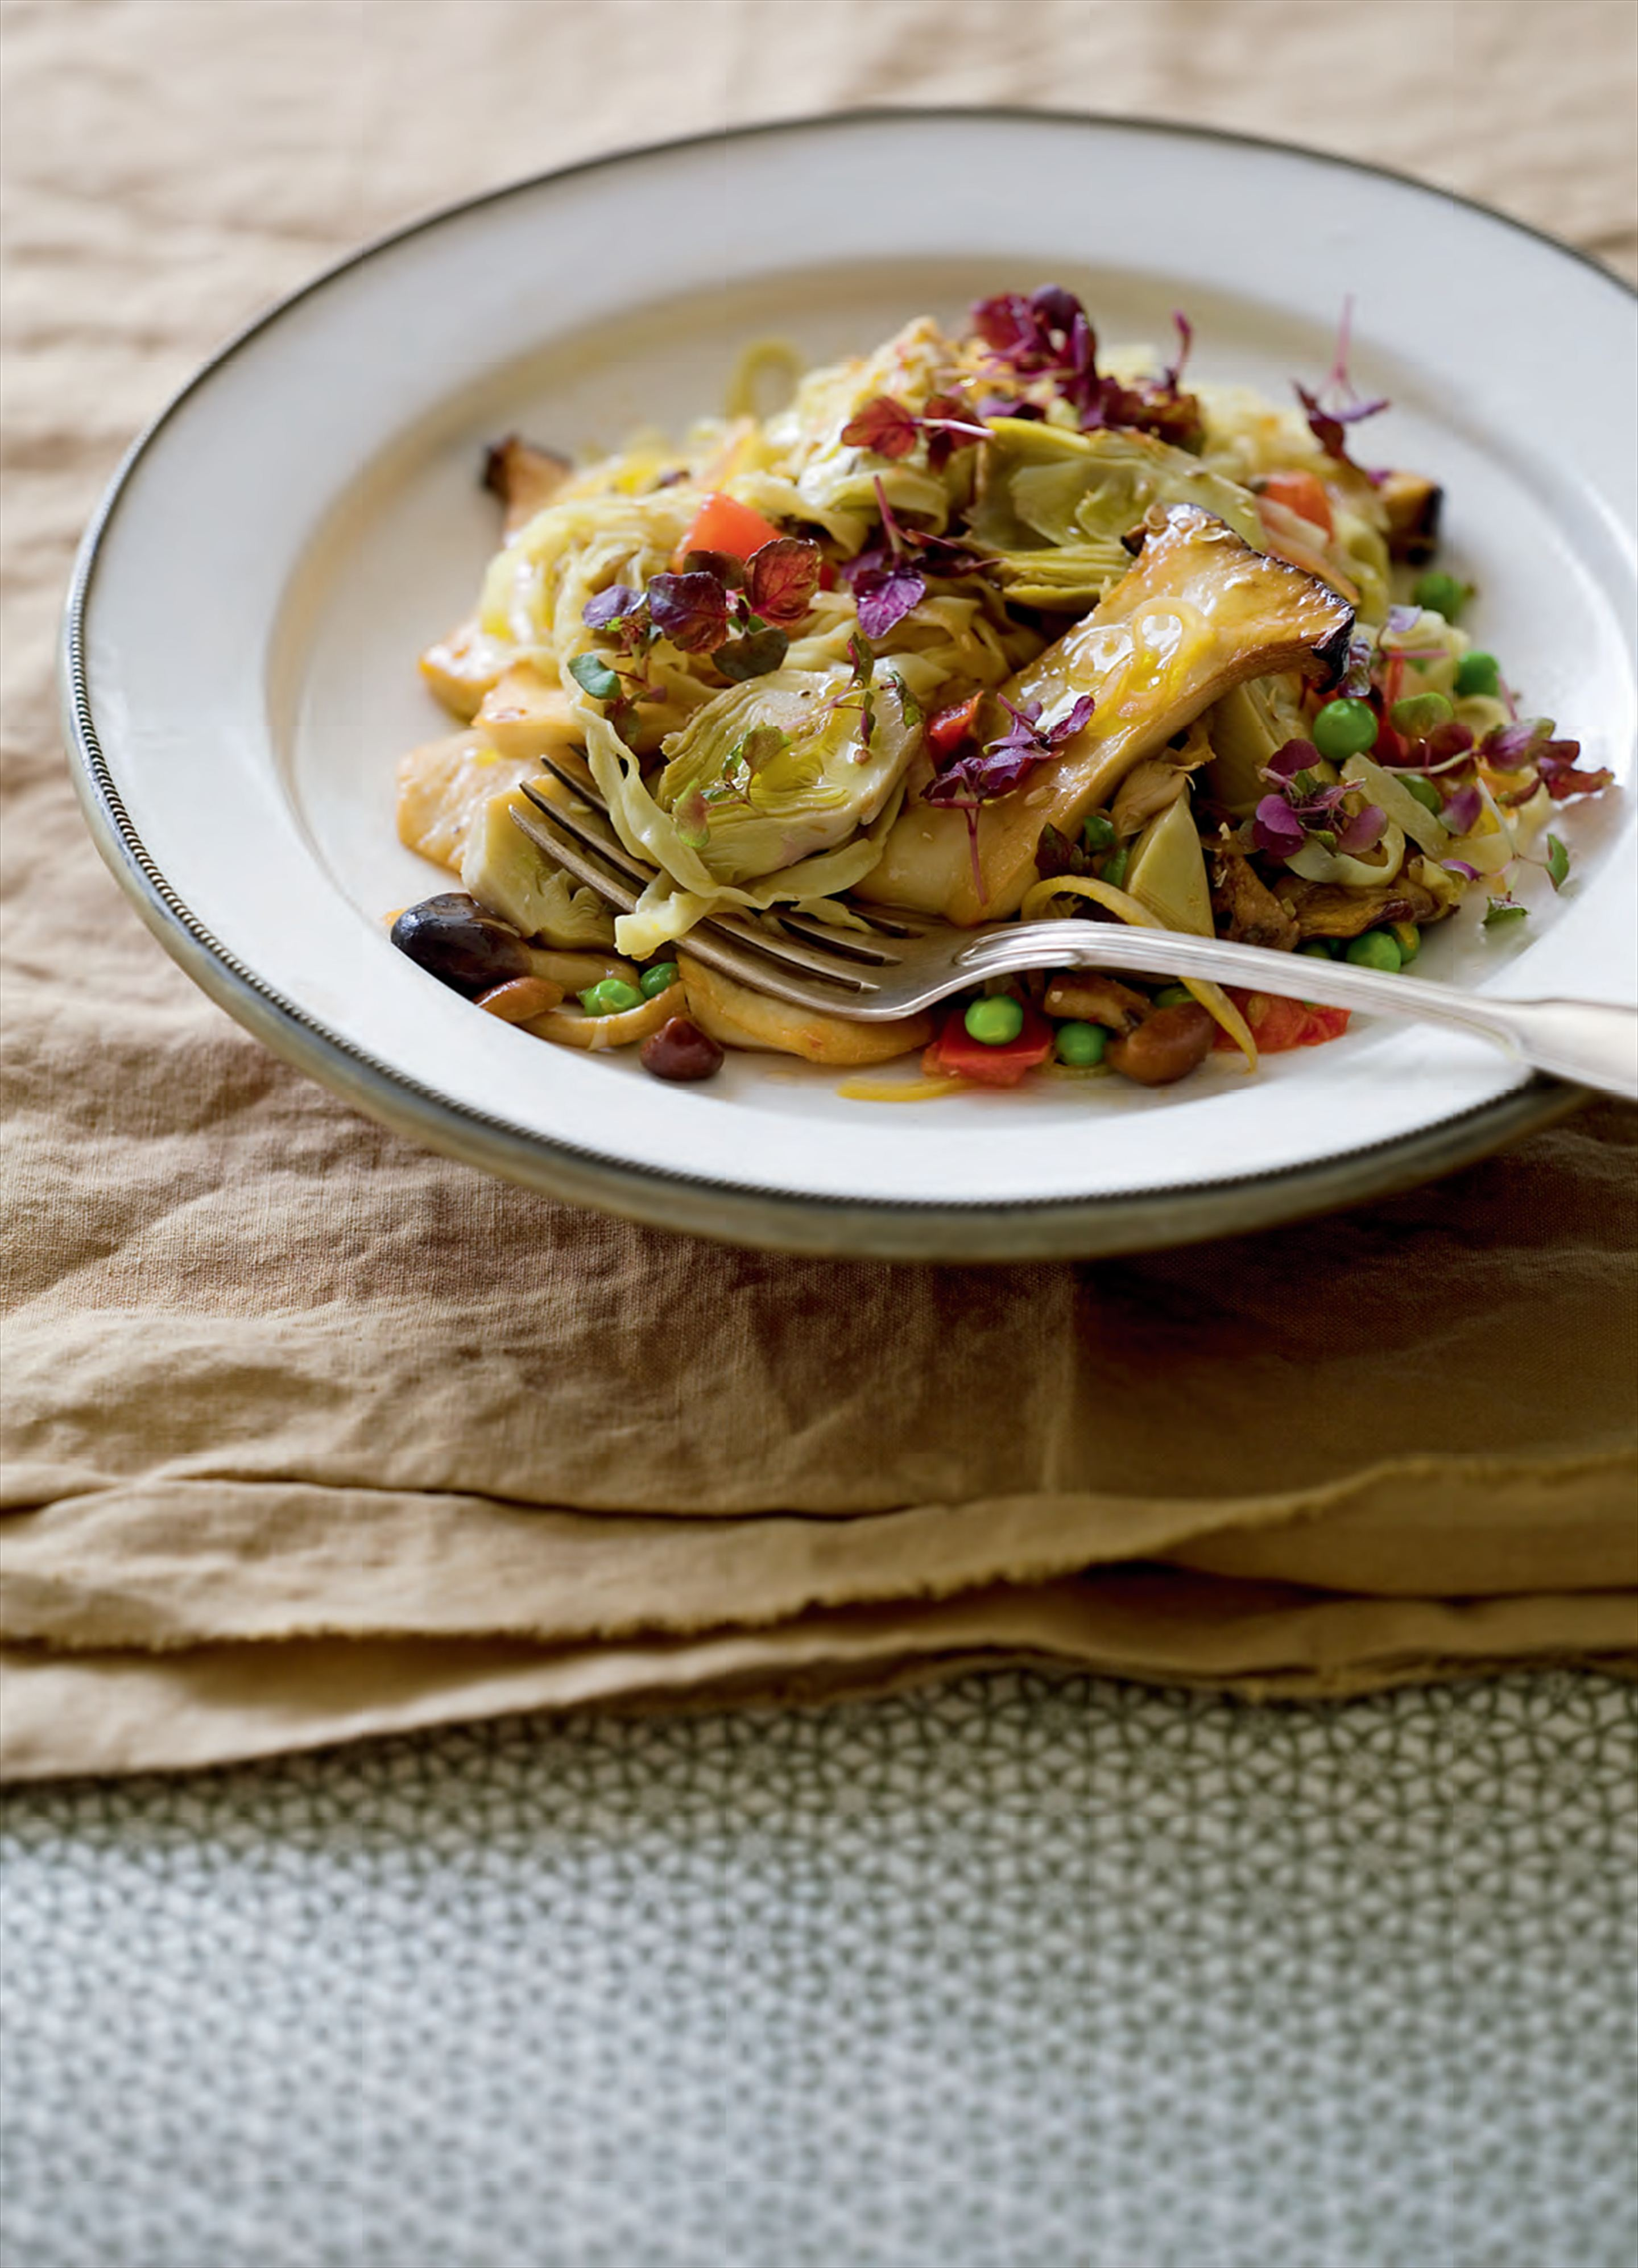 Buttered egg noodles with artichokes, cèpes and saffron